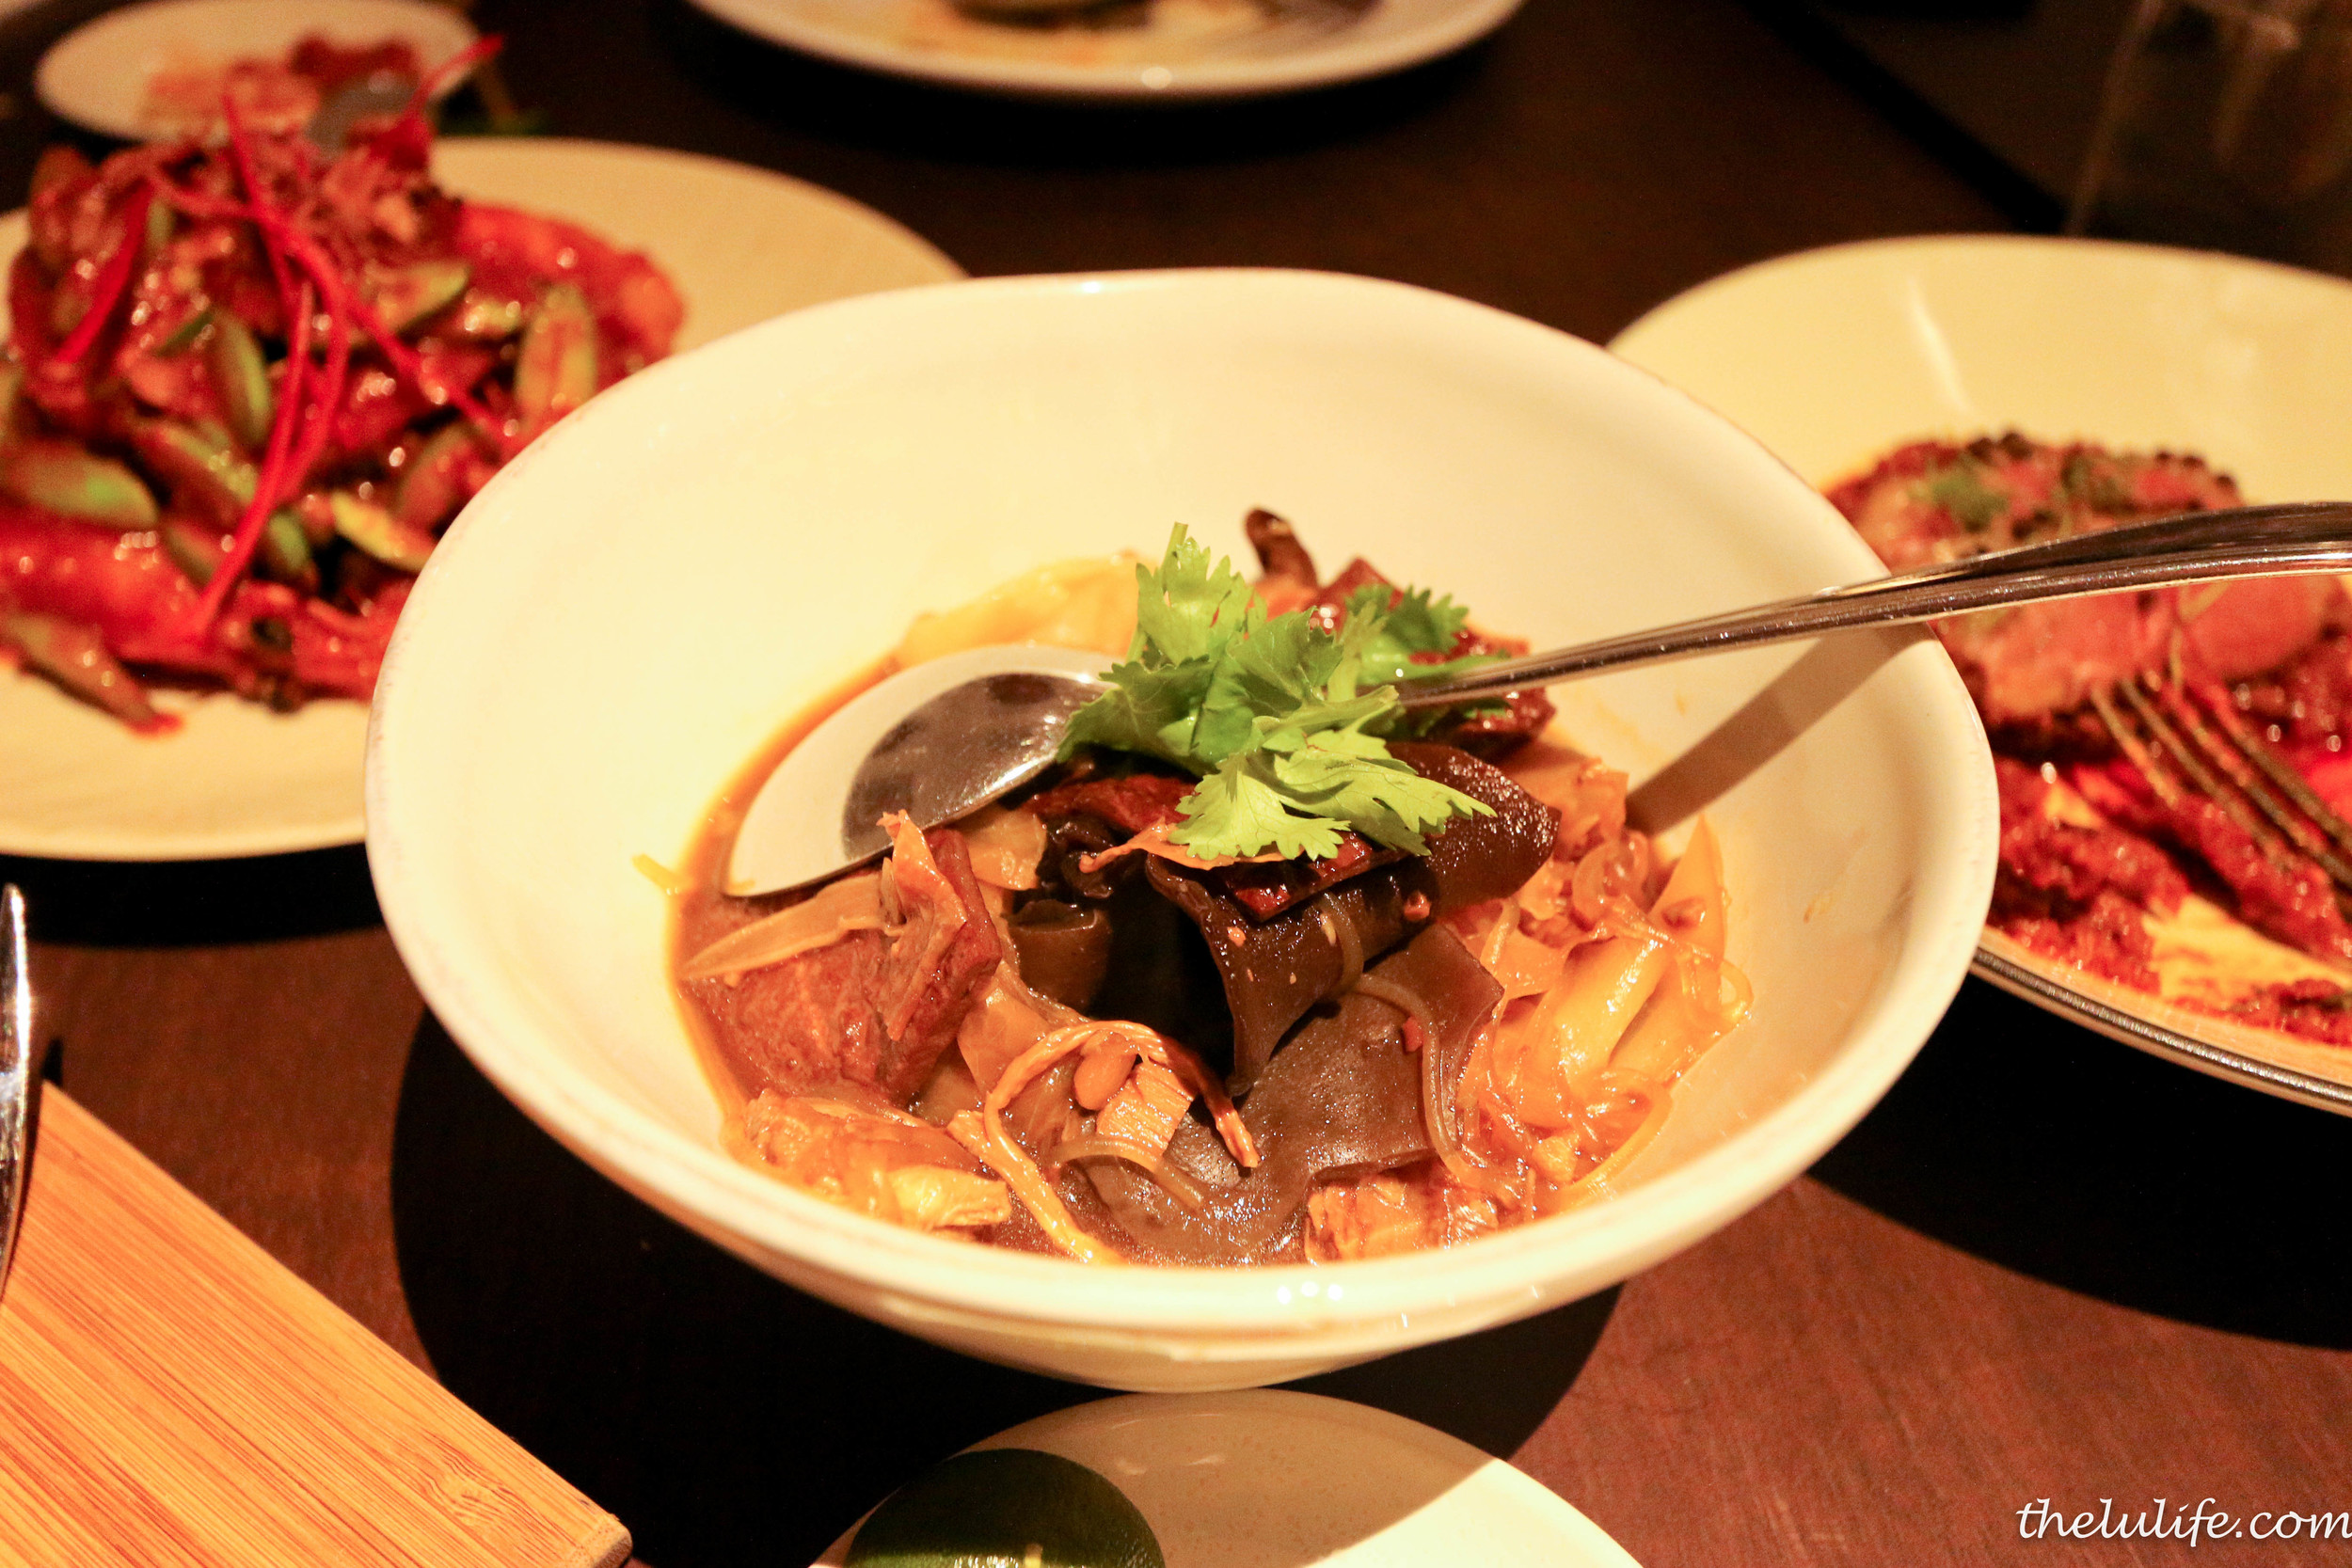 Chap chye - braised cabbage with mushrooms, sweet and dried bean curd, pork belly and black fungus in rich prawn stock gravy